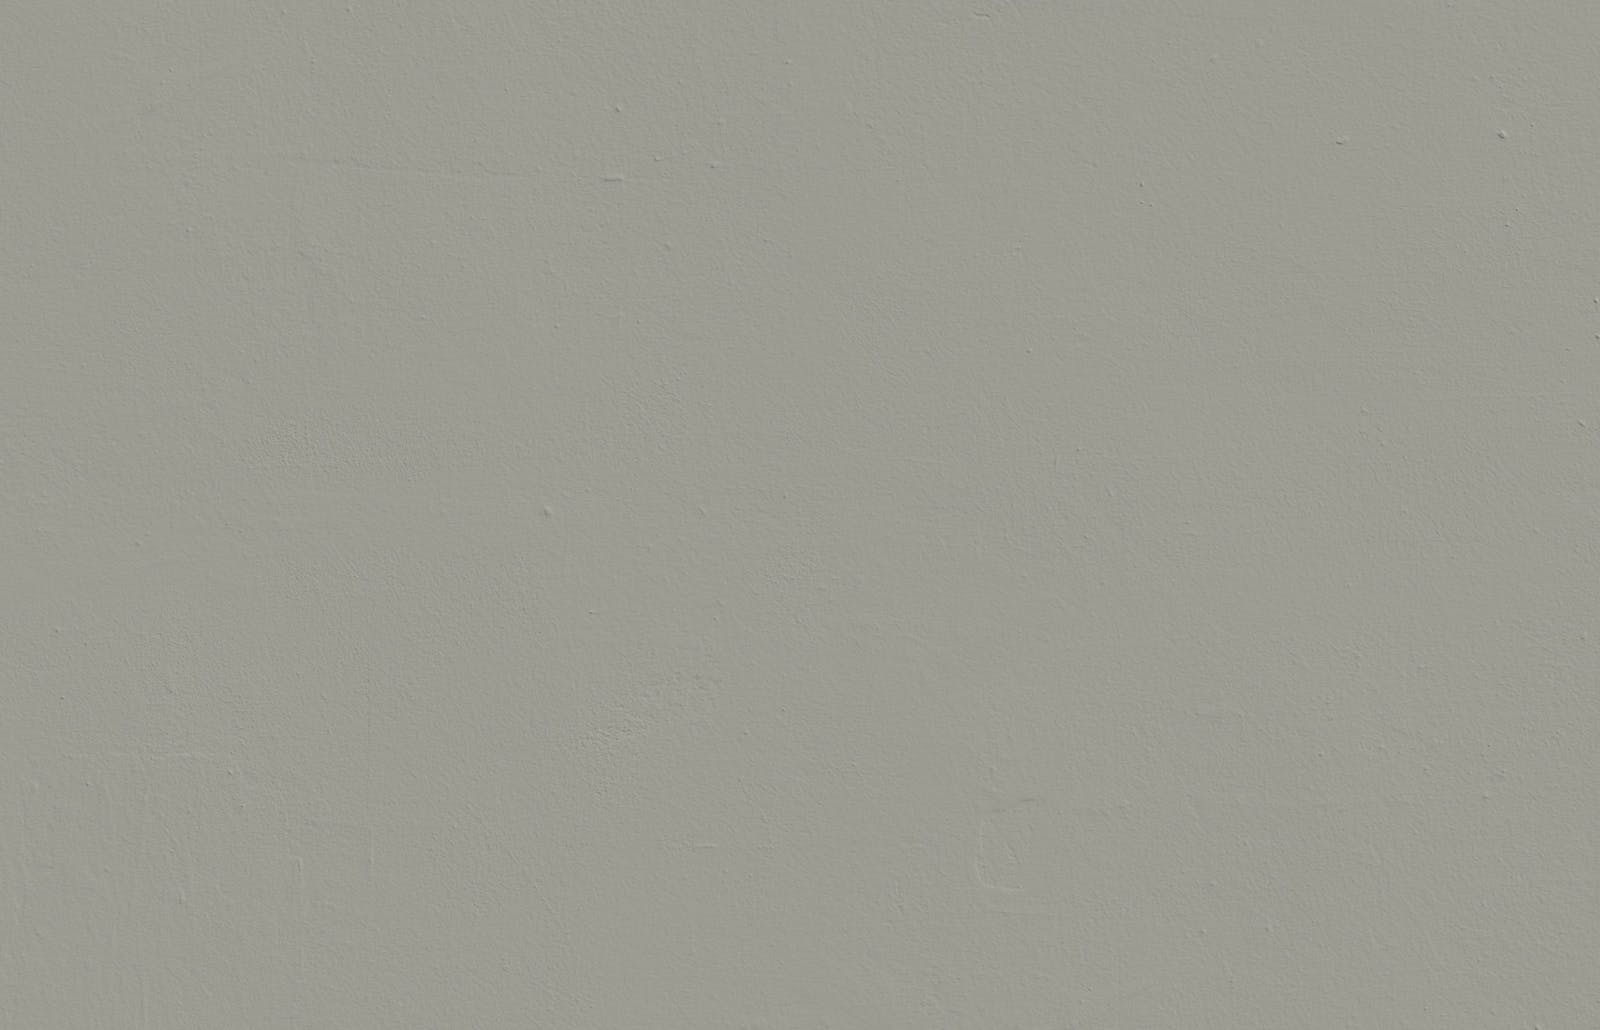 Textured wall painted in Lick Grey 05 paint